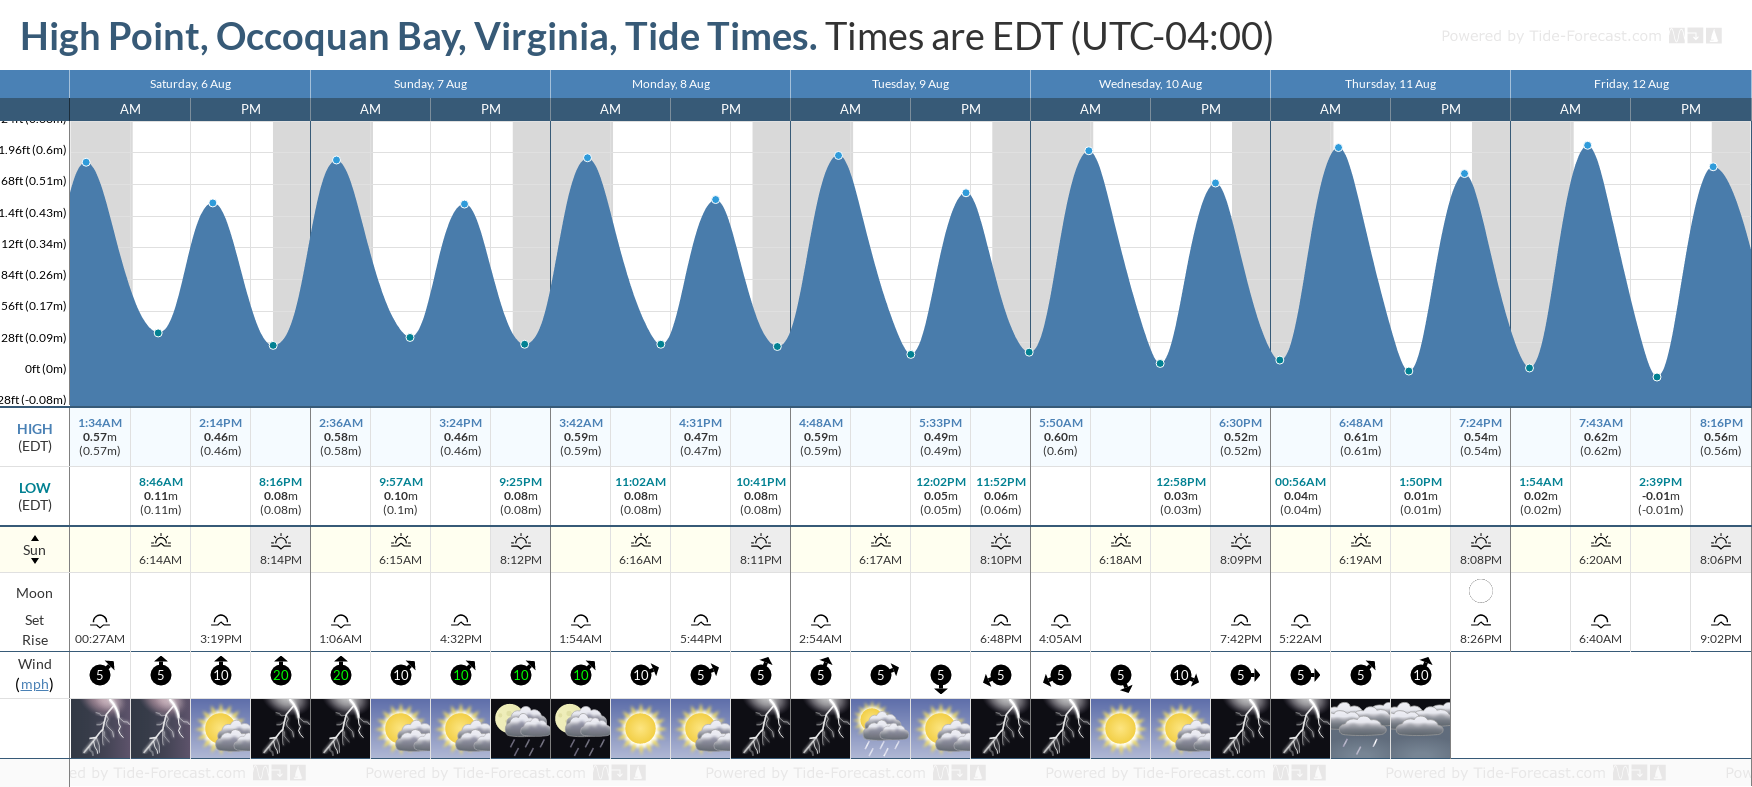 High Point, Occoquan Bay, Virginia Tide Chart including high and low tide tide times for the next 7 days